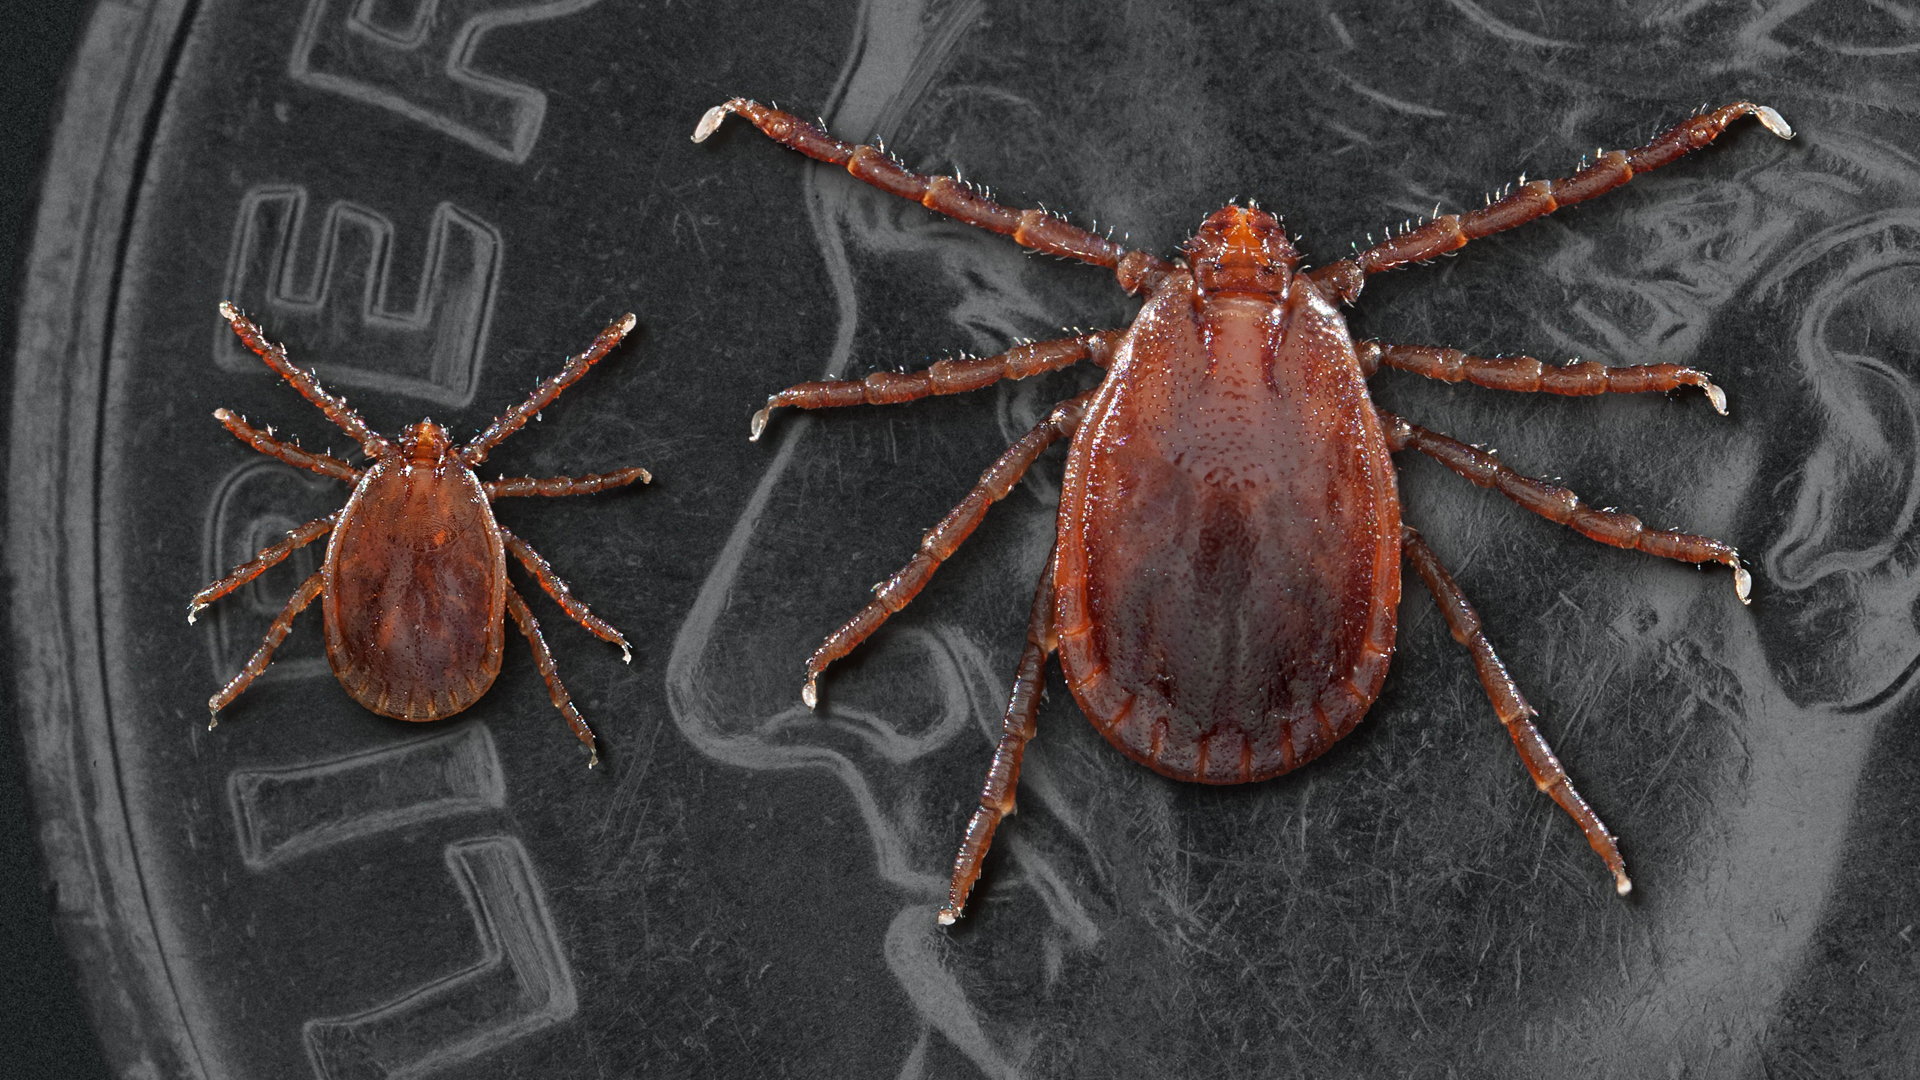 Two Asian longhorned ticks: a nymph or immature tick at left and an adult female. (Credit: Journal of Medical Entomology via CNN Wire)